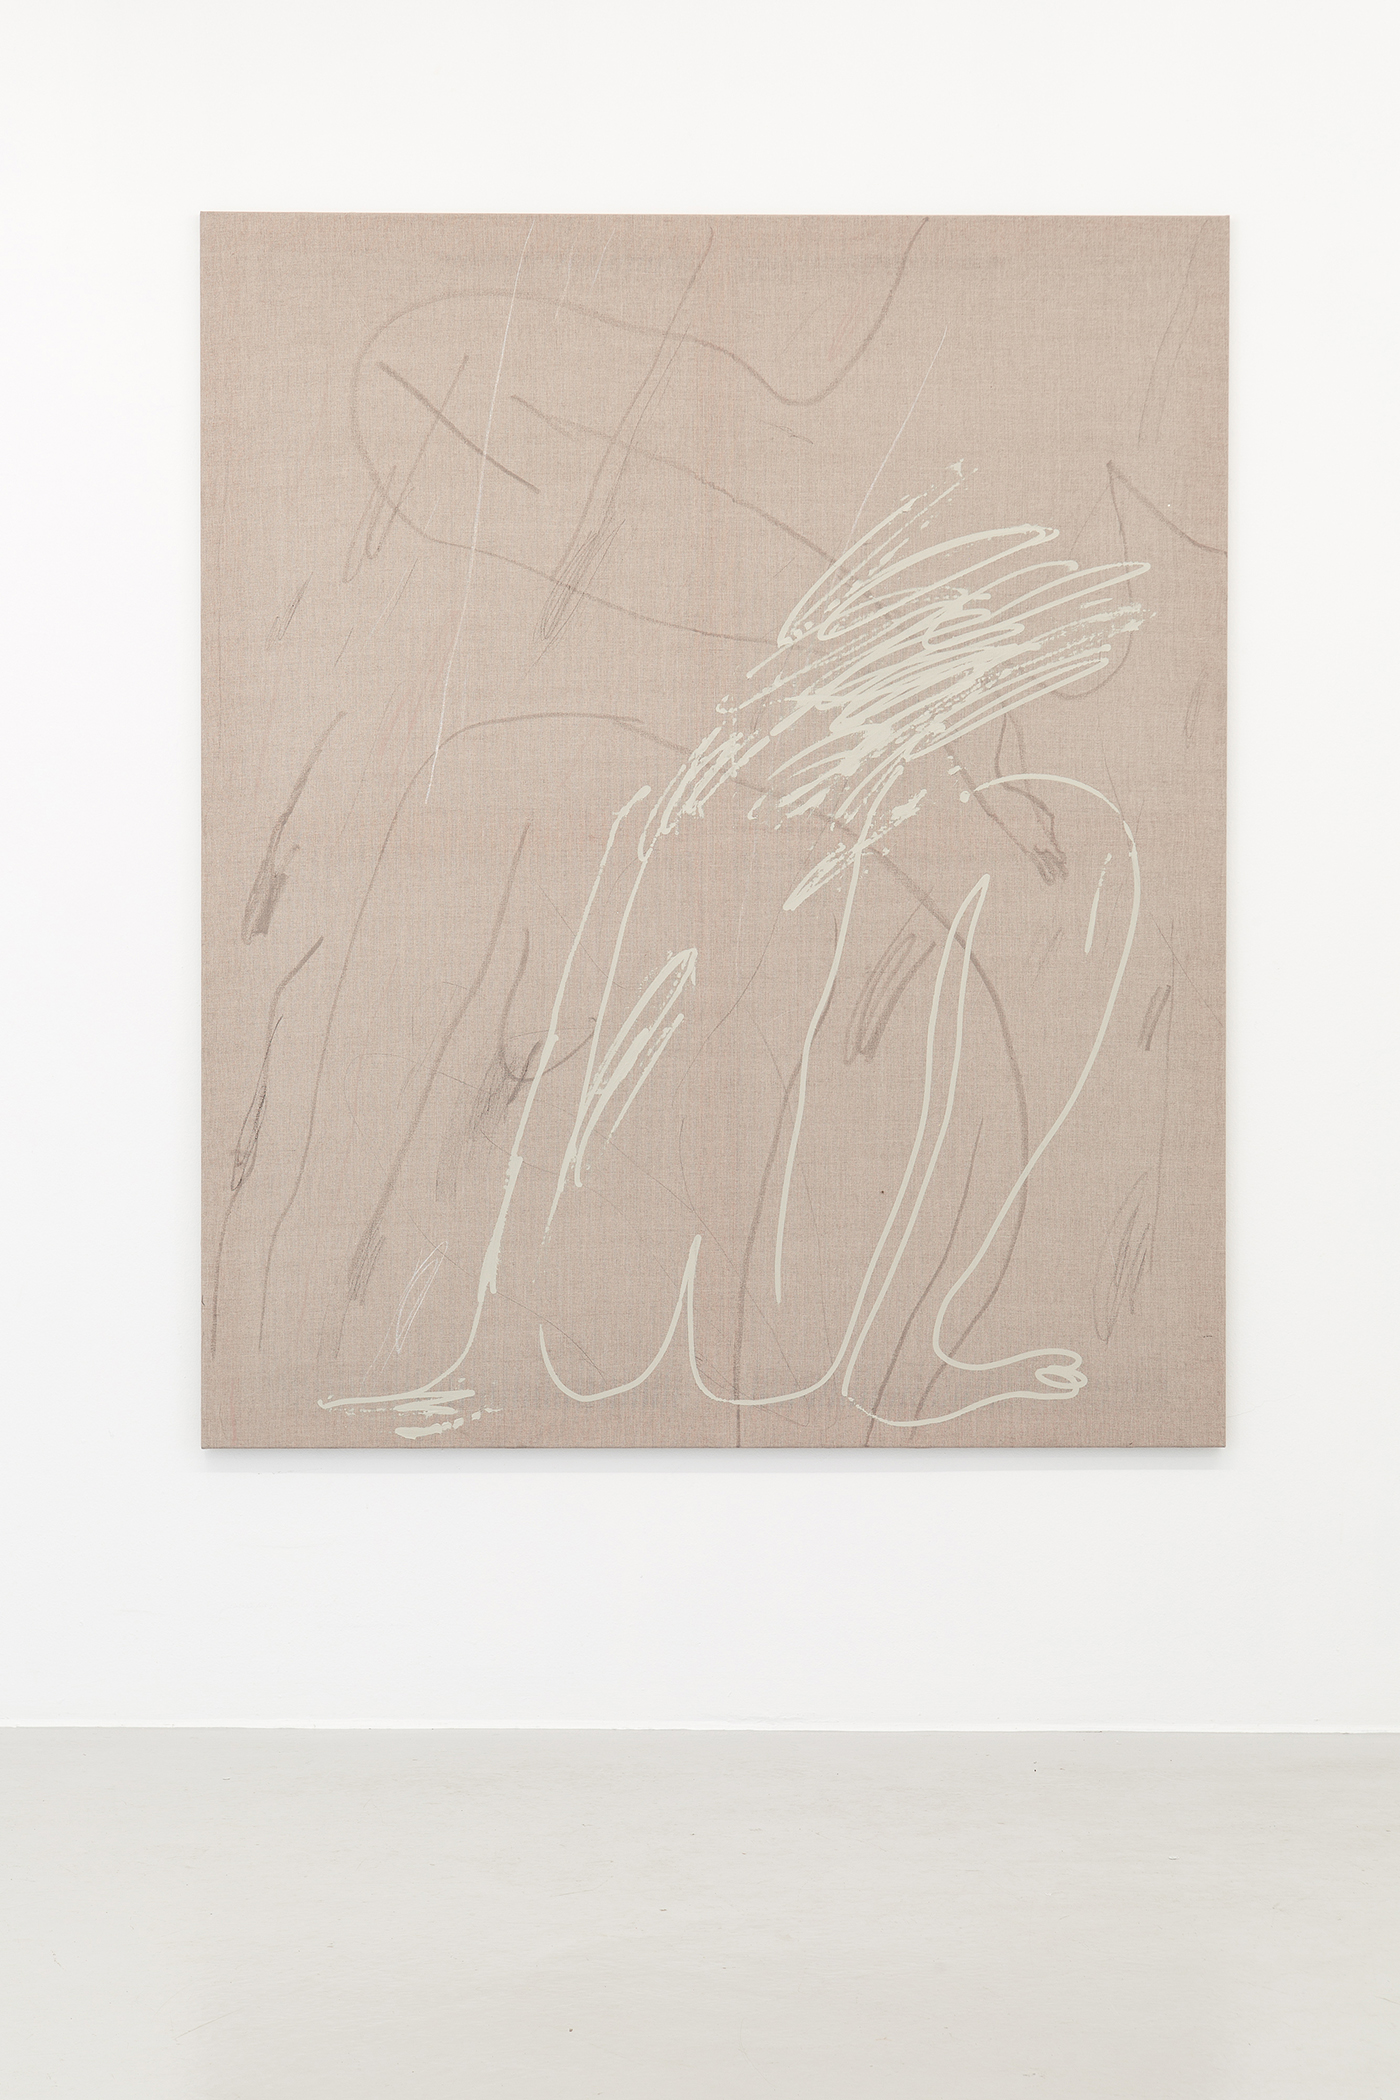 Alina Vergnano,  Scattered , 2019, Acrylic, oil stick and pastel on linen, 150 x 180 cm